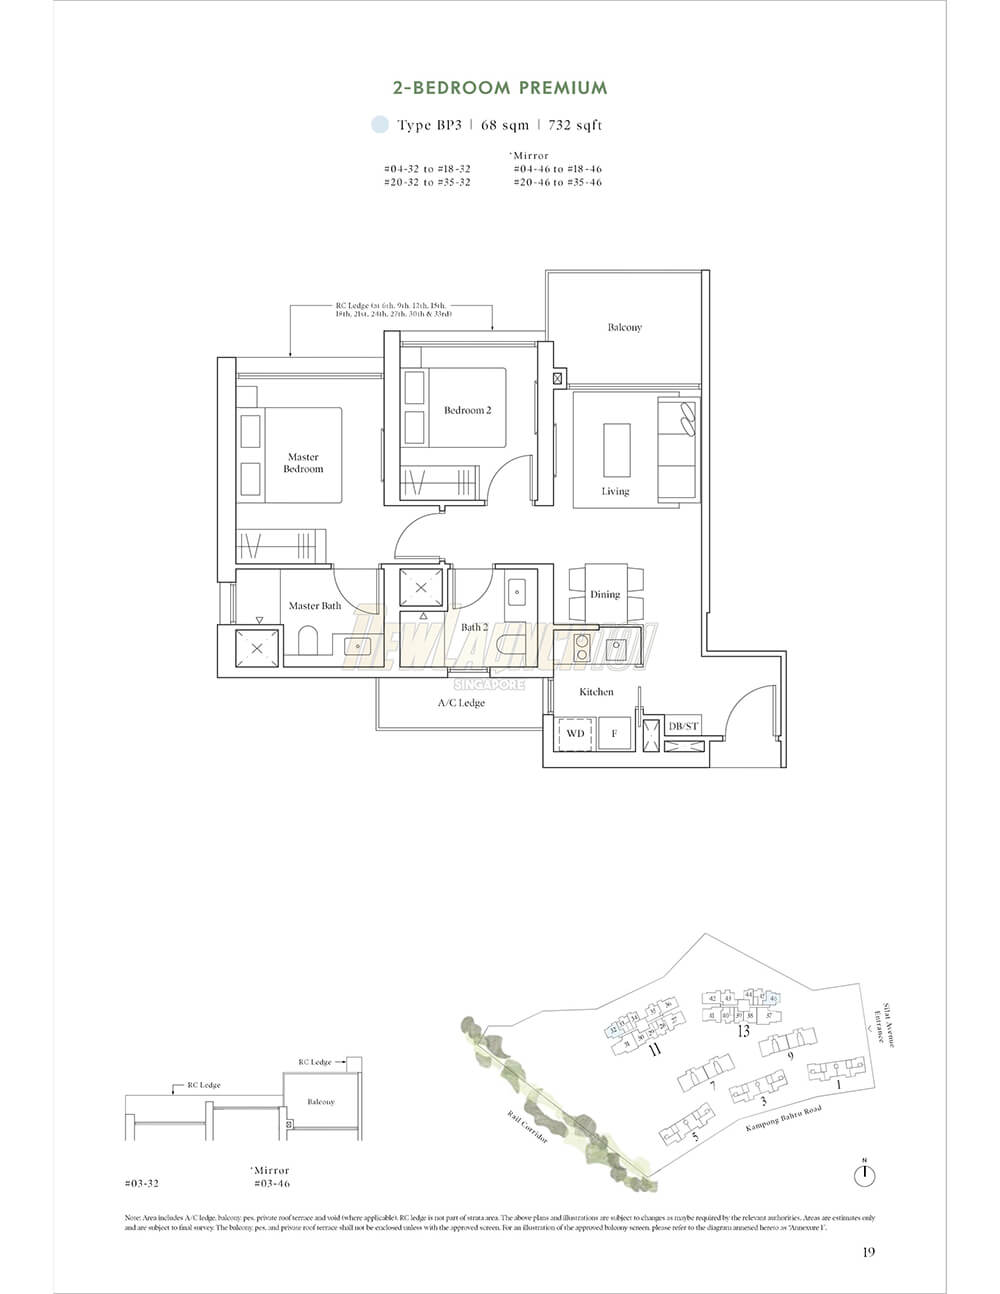 Avenue South Residence 2-Bedroom Premium Type BP3